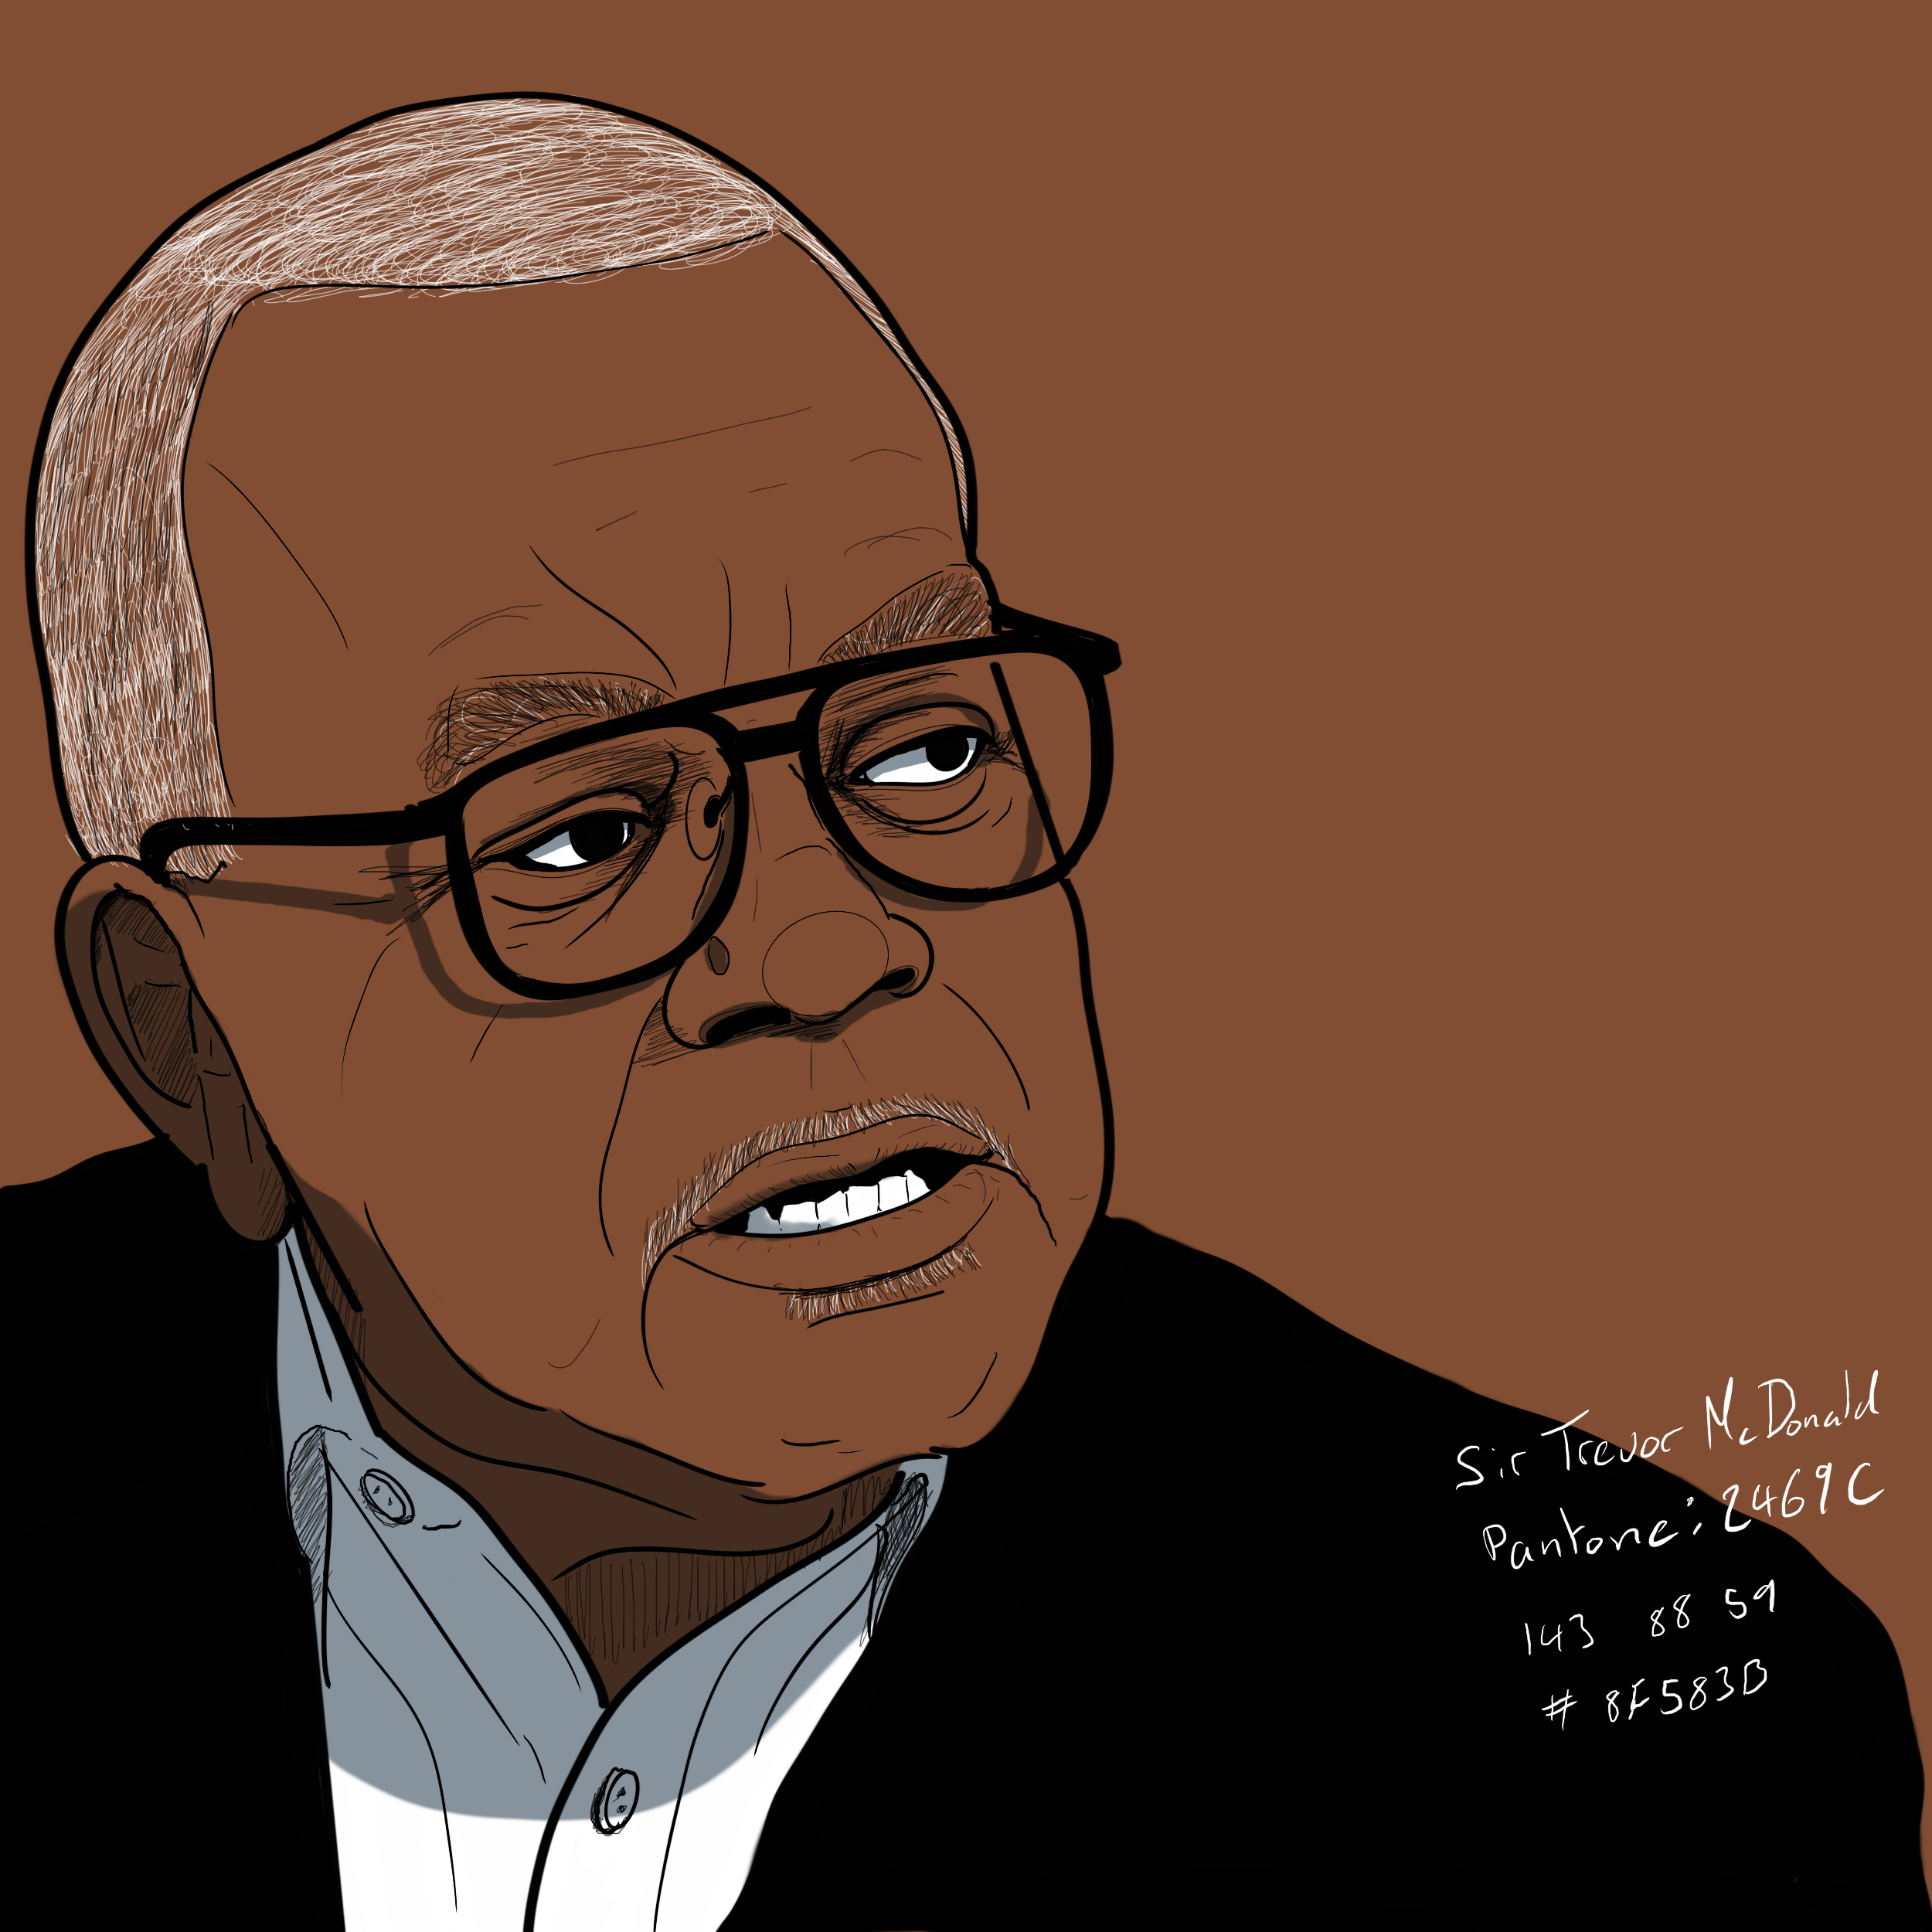 6. Sir Trevor McDonald 1.png